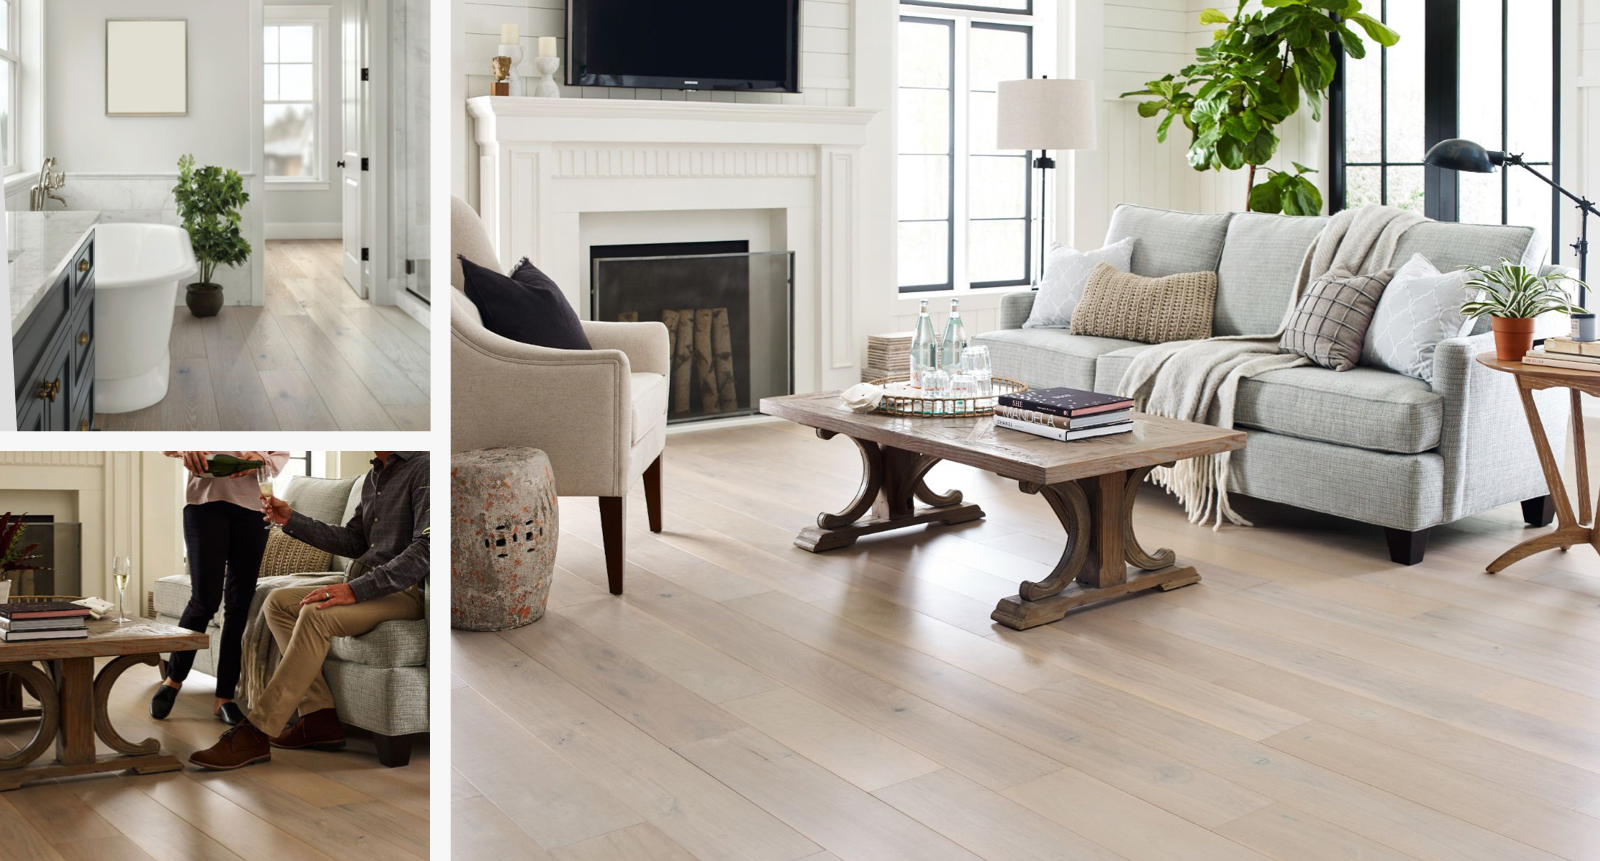 Floorte waterproof hardwood flooring for your home | FLOOR DIMENSIONS